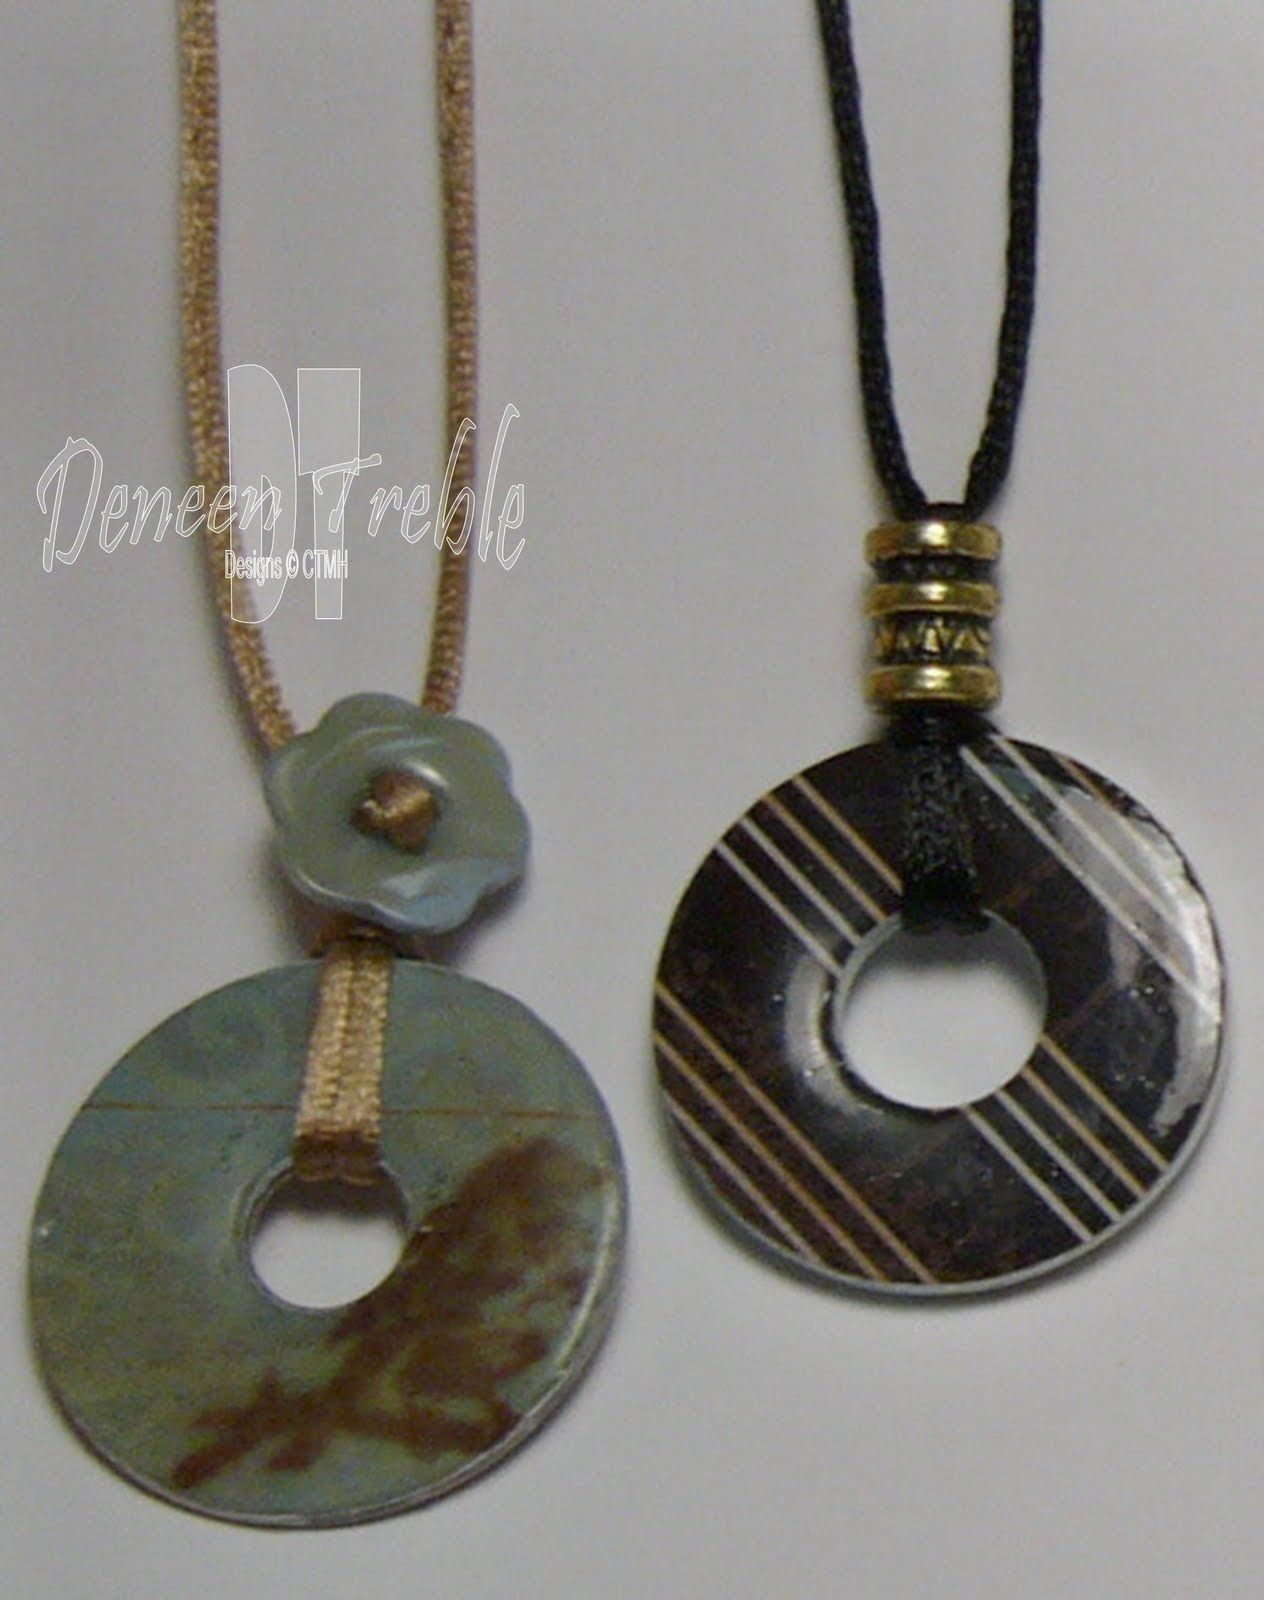 Washer pendants tutorial this is the best one yet on washer washer pendants tutorial this is the best one yet on washer pendants aloadofball Choice Image